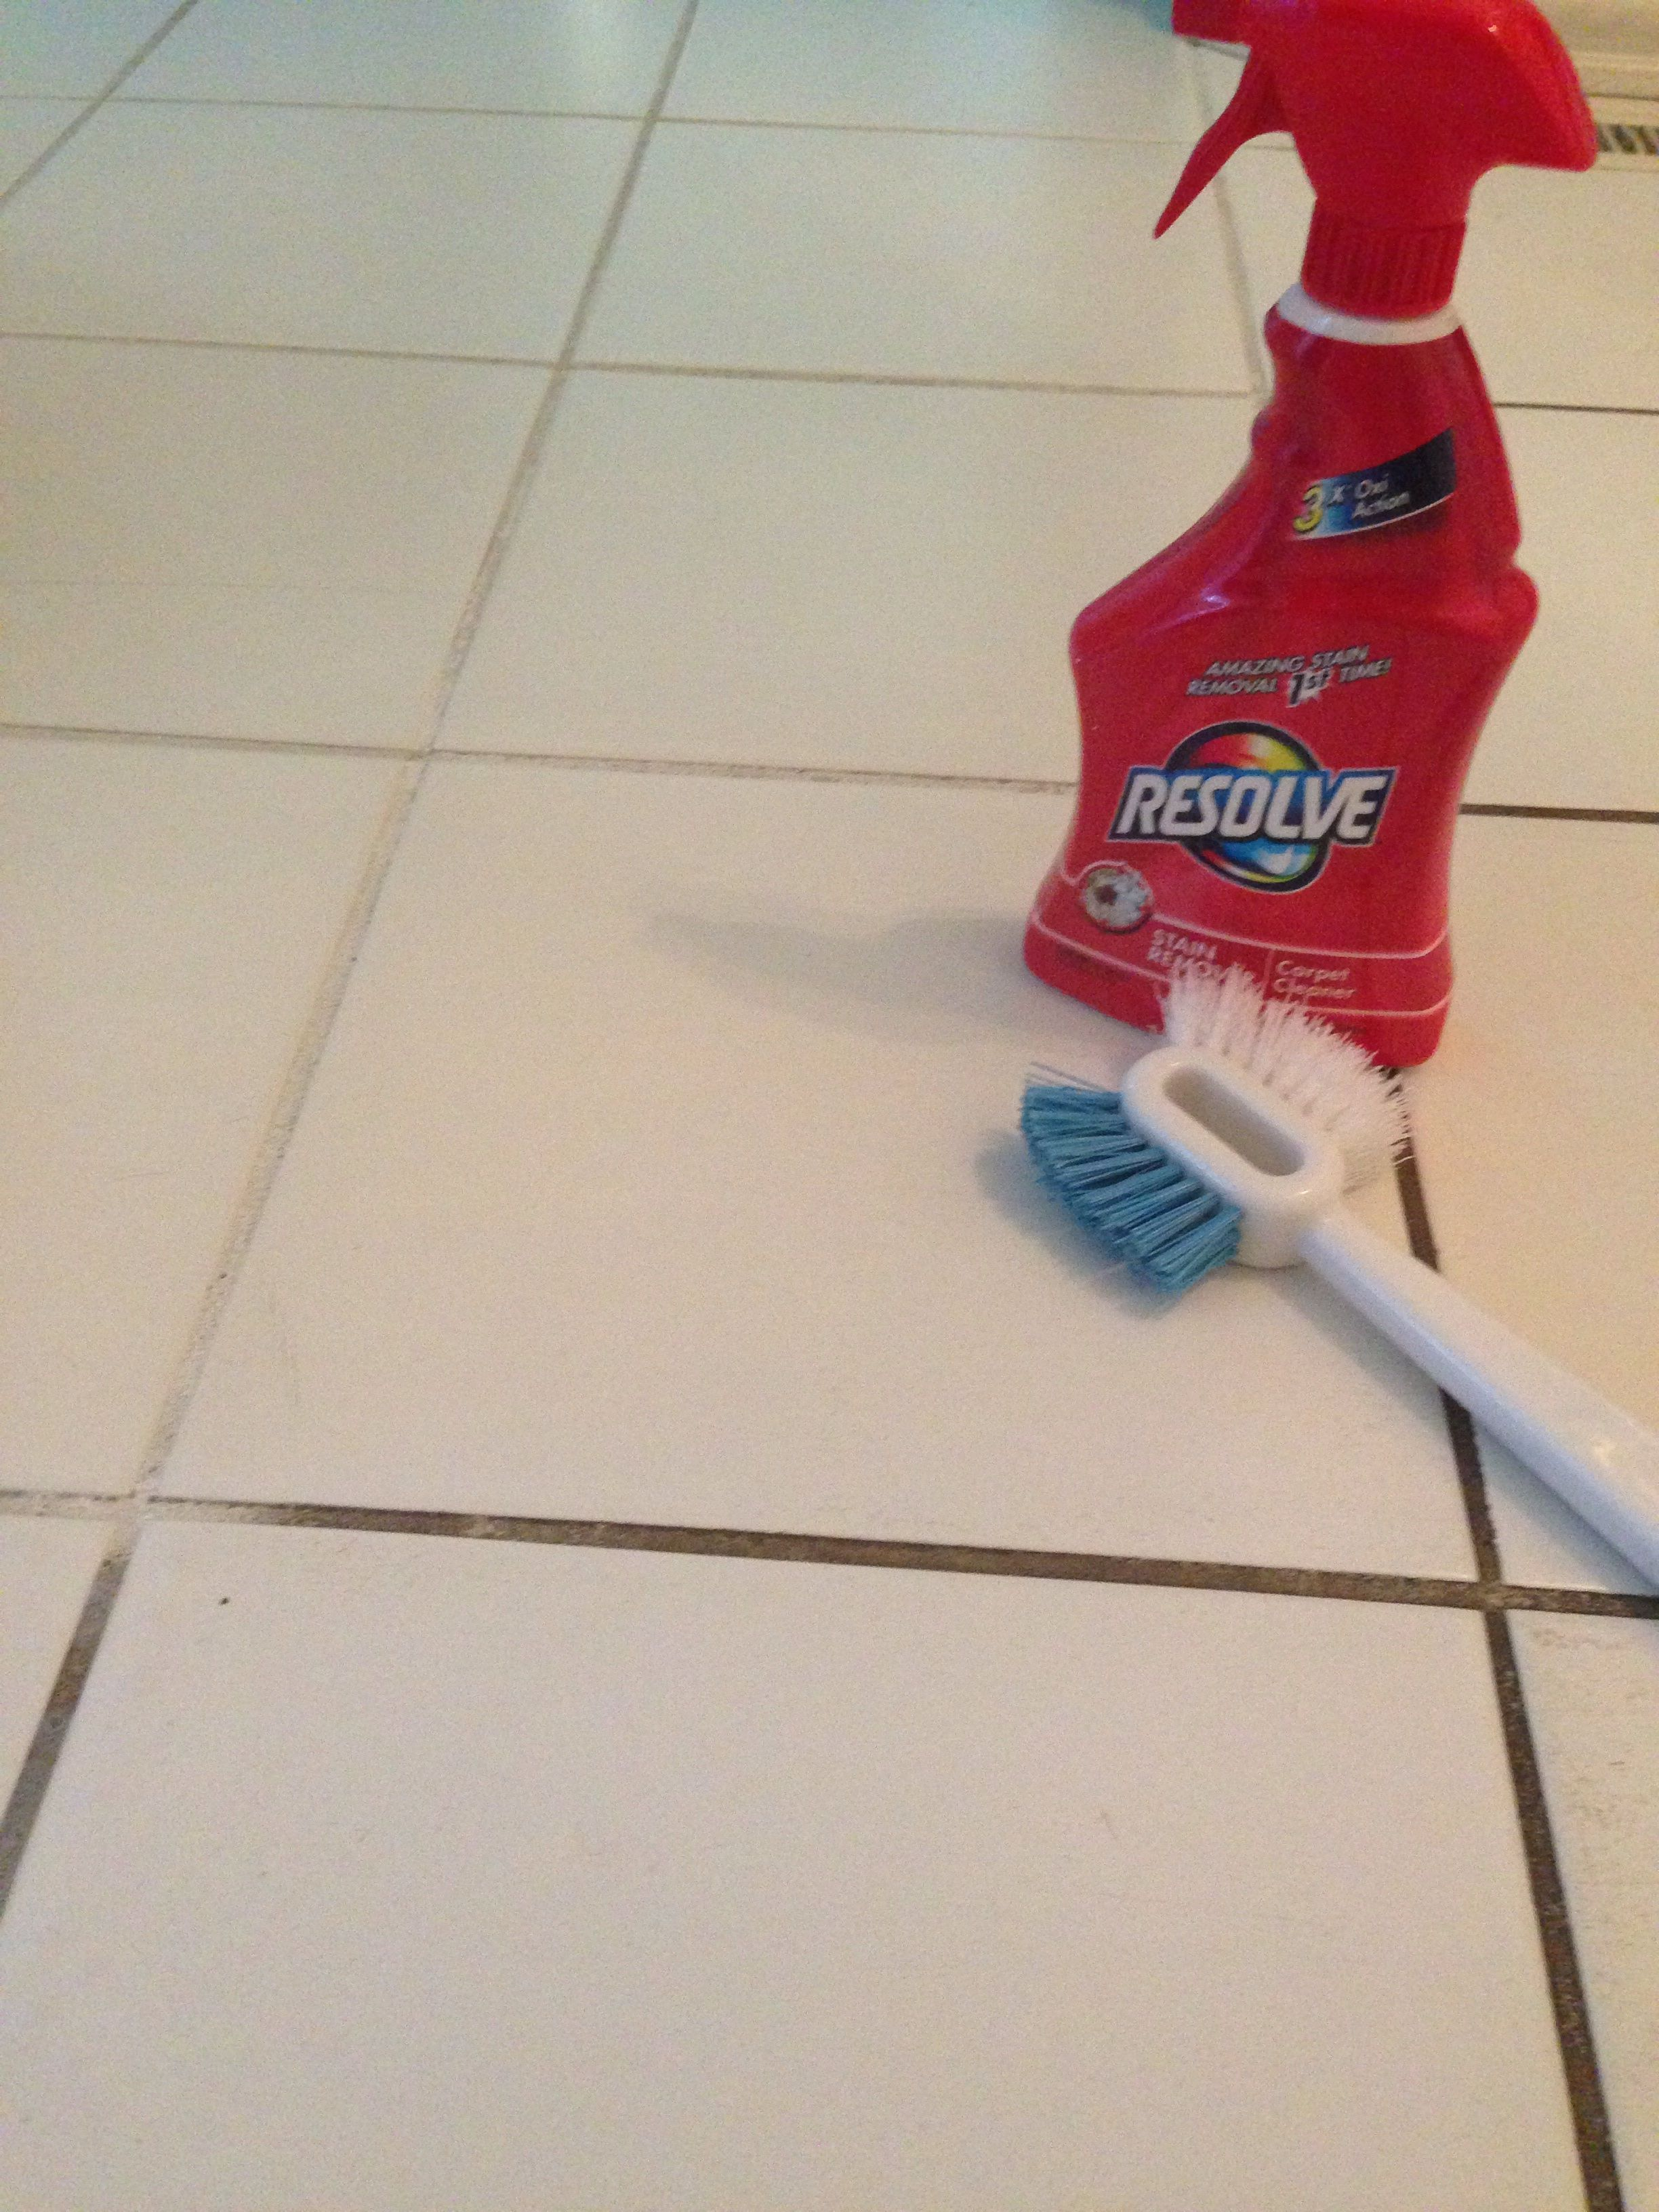 Resolve Carpet Cleaner To Clean Grout Cleaning Tips